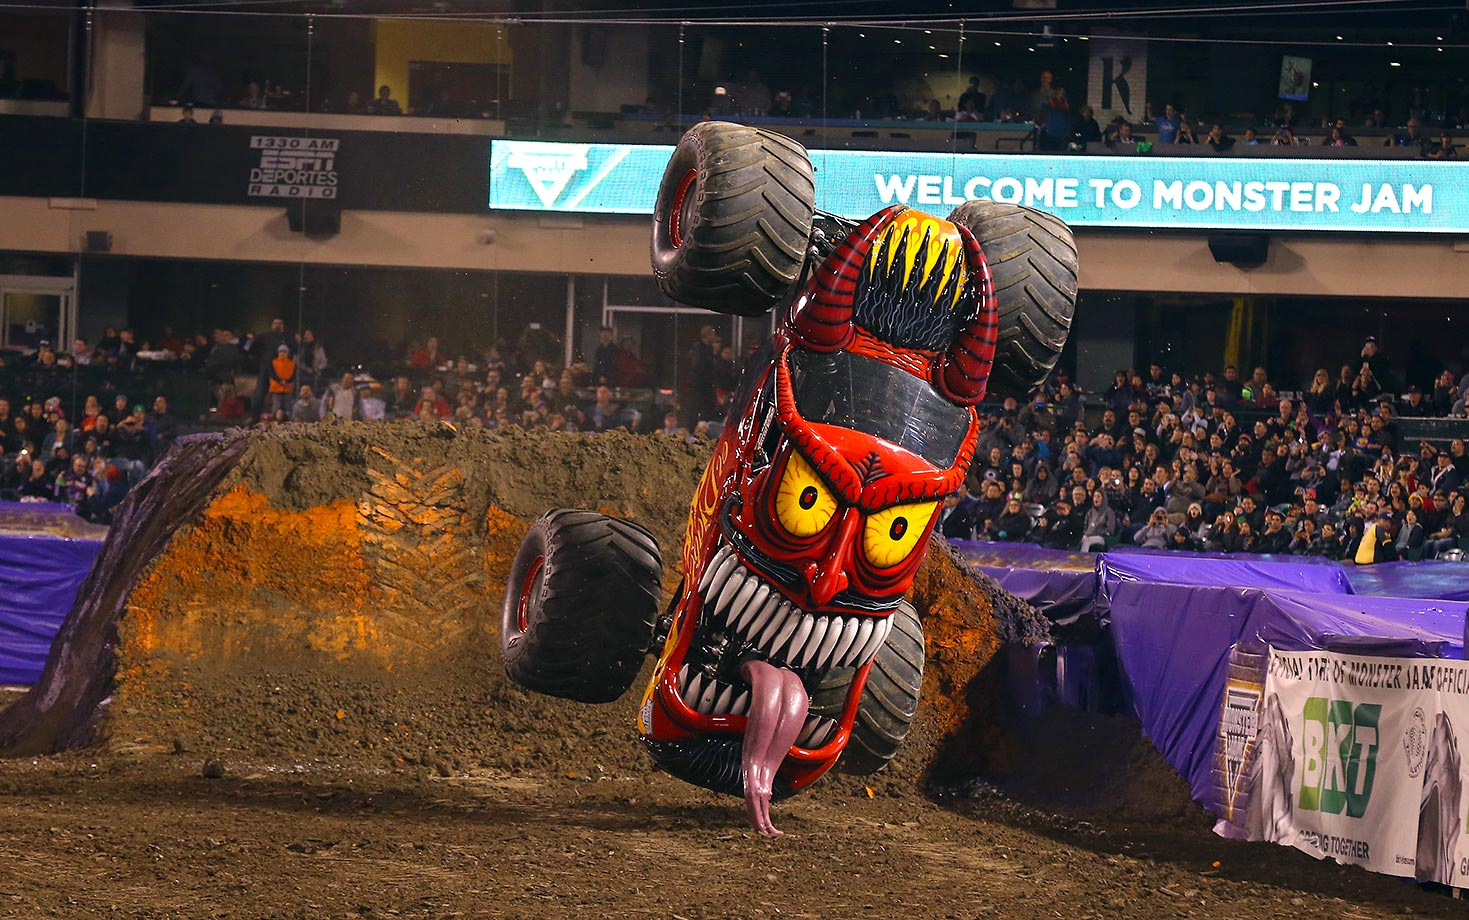 Sports Illustrated contributing photographer Gary Bogdon spent a day with Monster Trucks at Angel Stadium in Anaheim, Calif., during Monster Jam 2016. The over-sized trucks and their drivers compete on temporary dirt tracks in stadiums around the world.  Monster Truck El Diablo gets upright after doing a flip to the cheers of the crowd during freestyle competition .